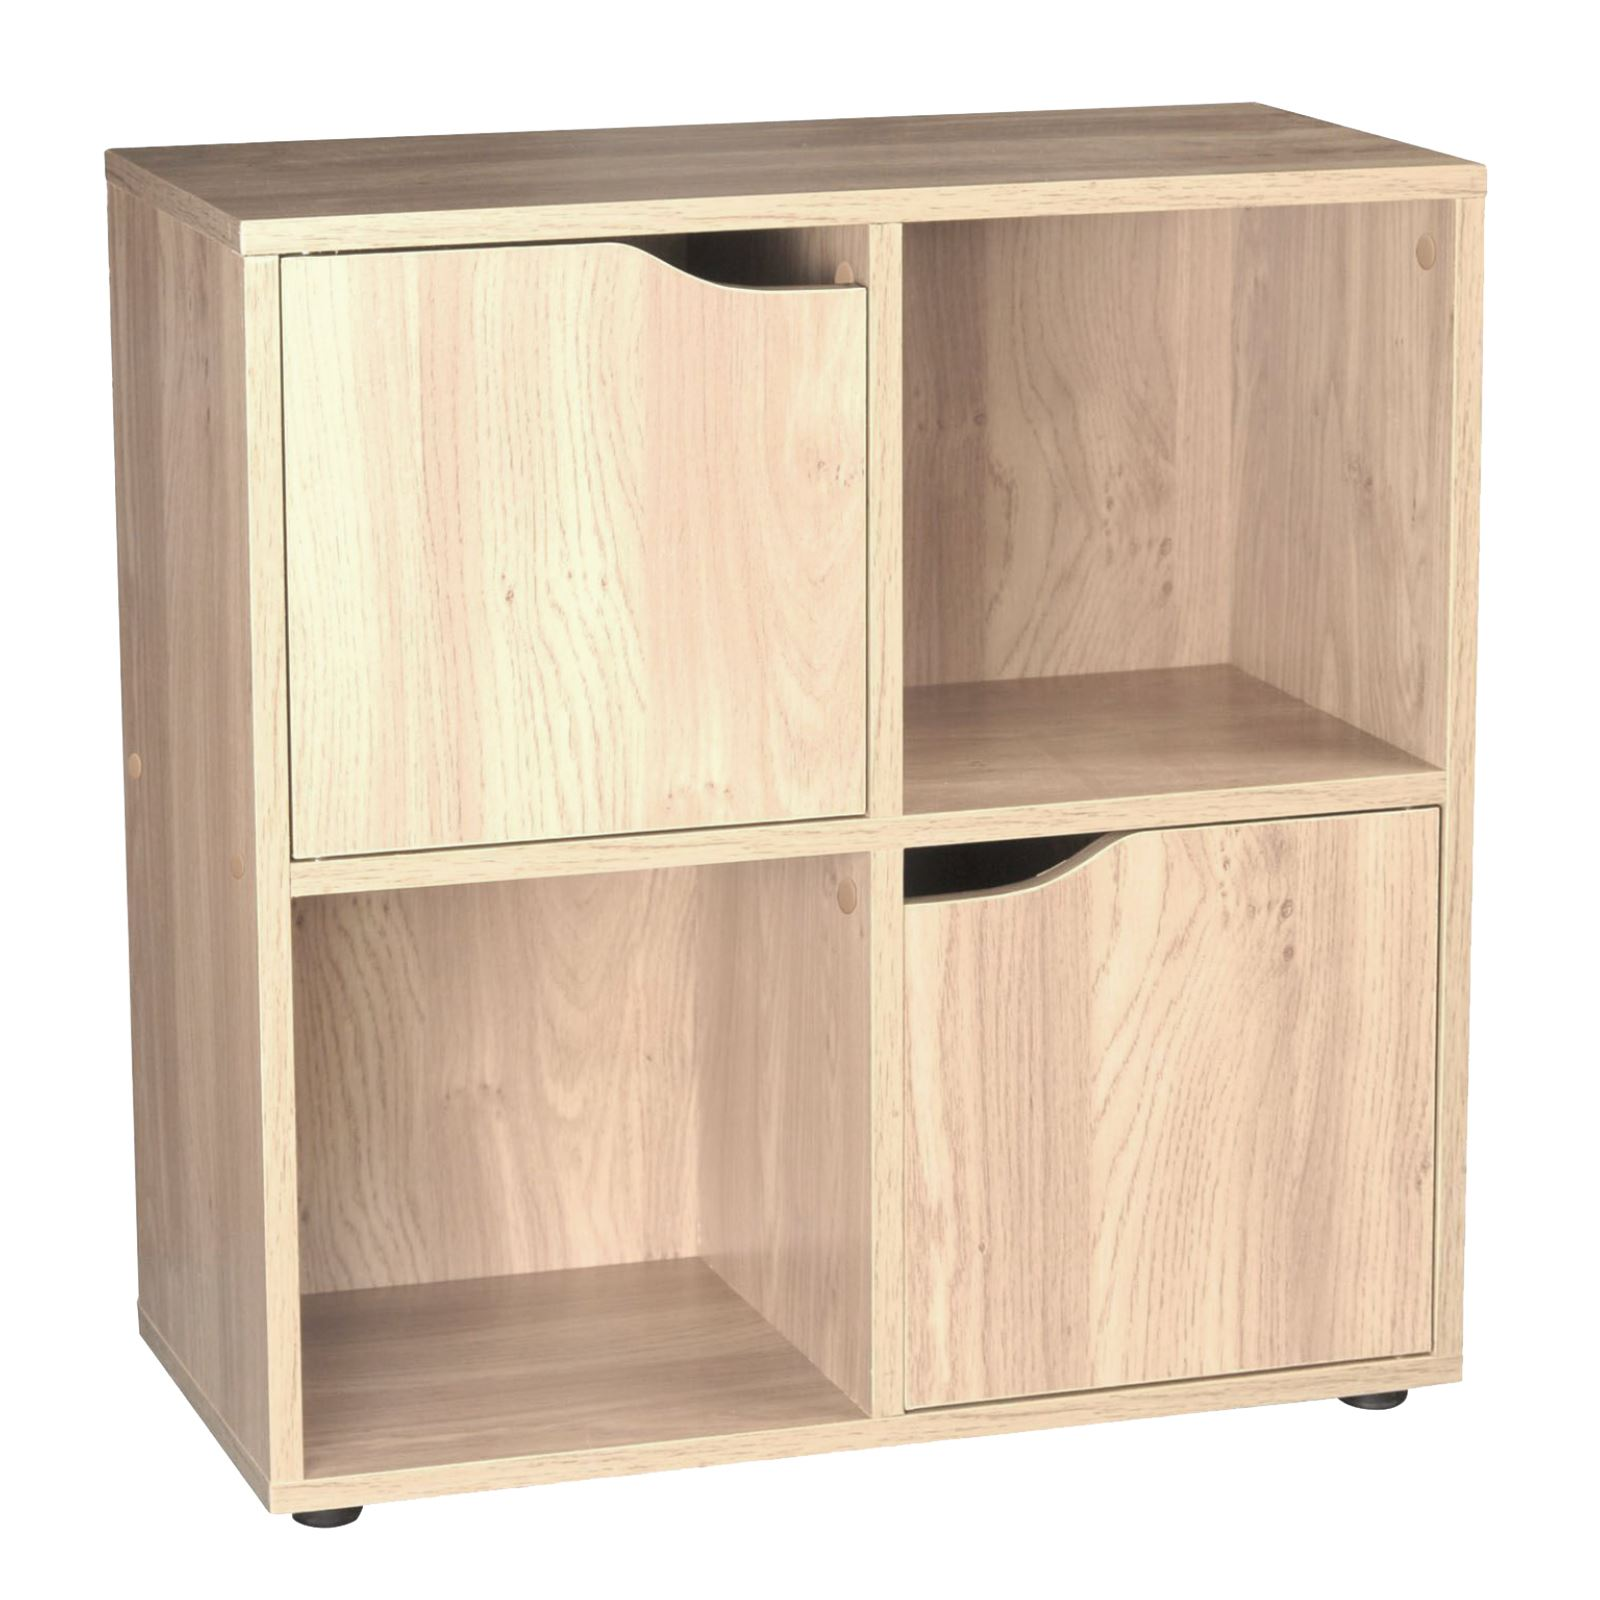 wooden 4 cube 2 doors storage unit cupboard bookcase shelving